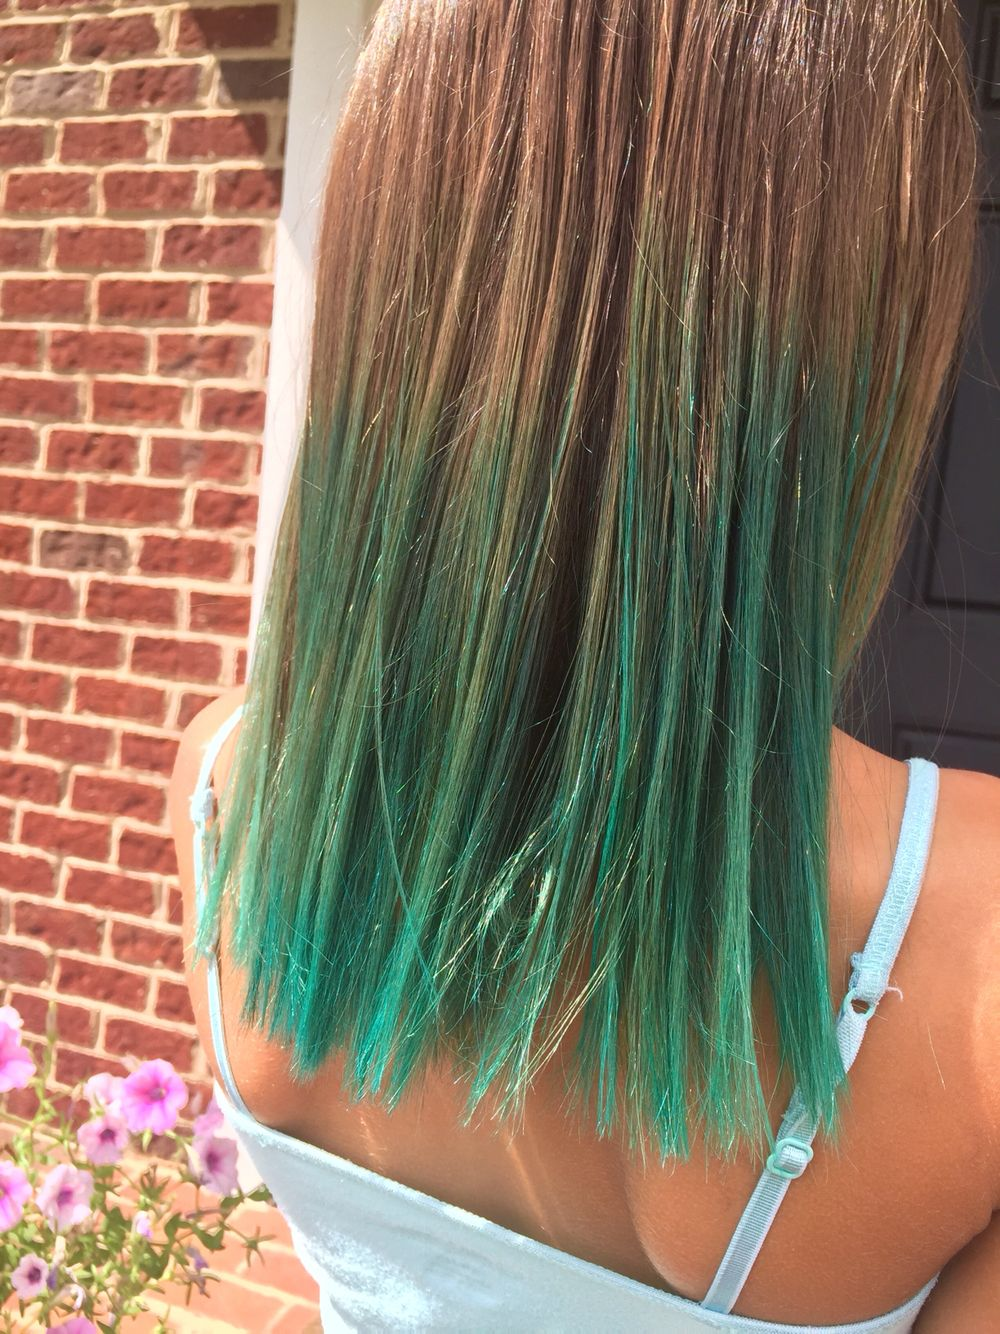 Food Coloring Hair Dye Inspirational A Stash Addict Blog Dyeing Hair With Kool Aid Mermaid Food Coloring Hair Dye Kool Aid Hair Food Coloring Hair